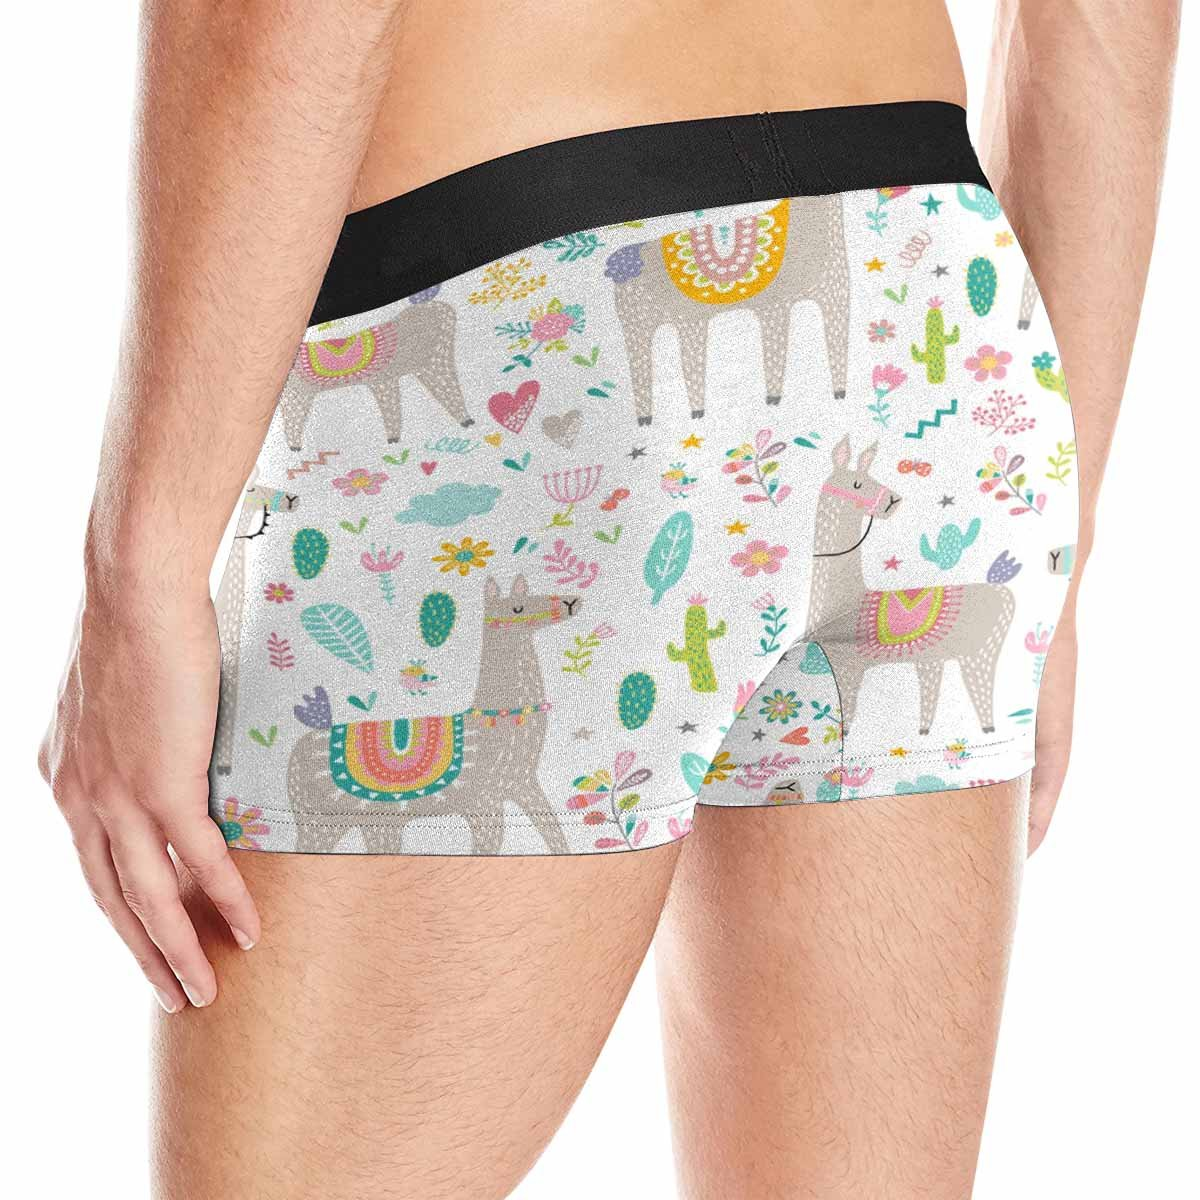 INTERESTPRINT Mens All-Over Print Boxer Briefs Wedding Couple Holding Hands with Roses XS-3XL